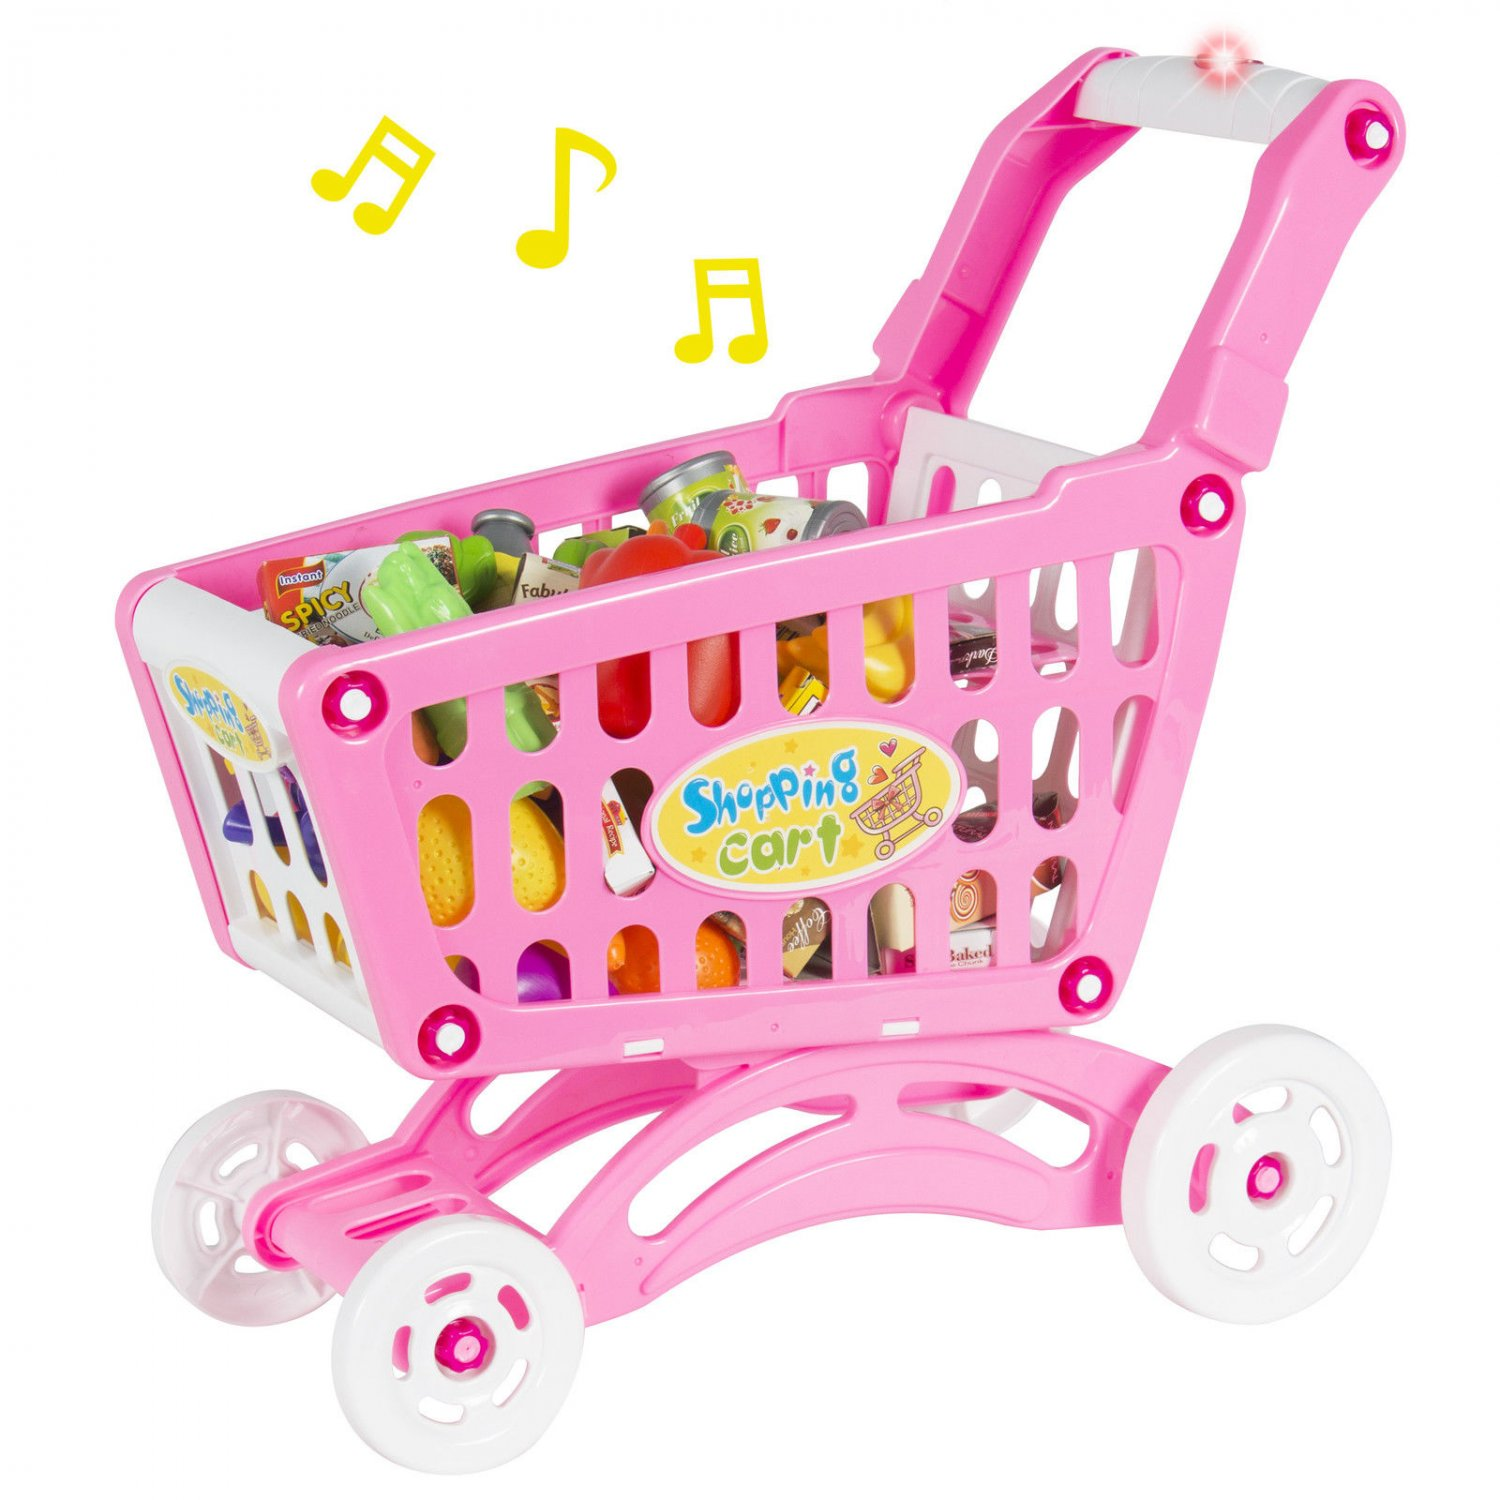 Walmart Toys Food : Musical shopping cart pretend play toy with food fruits